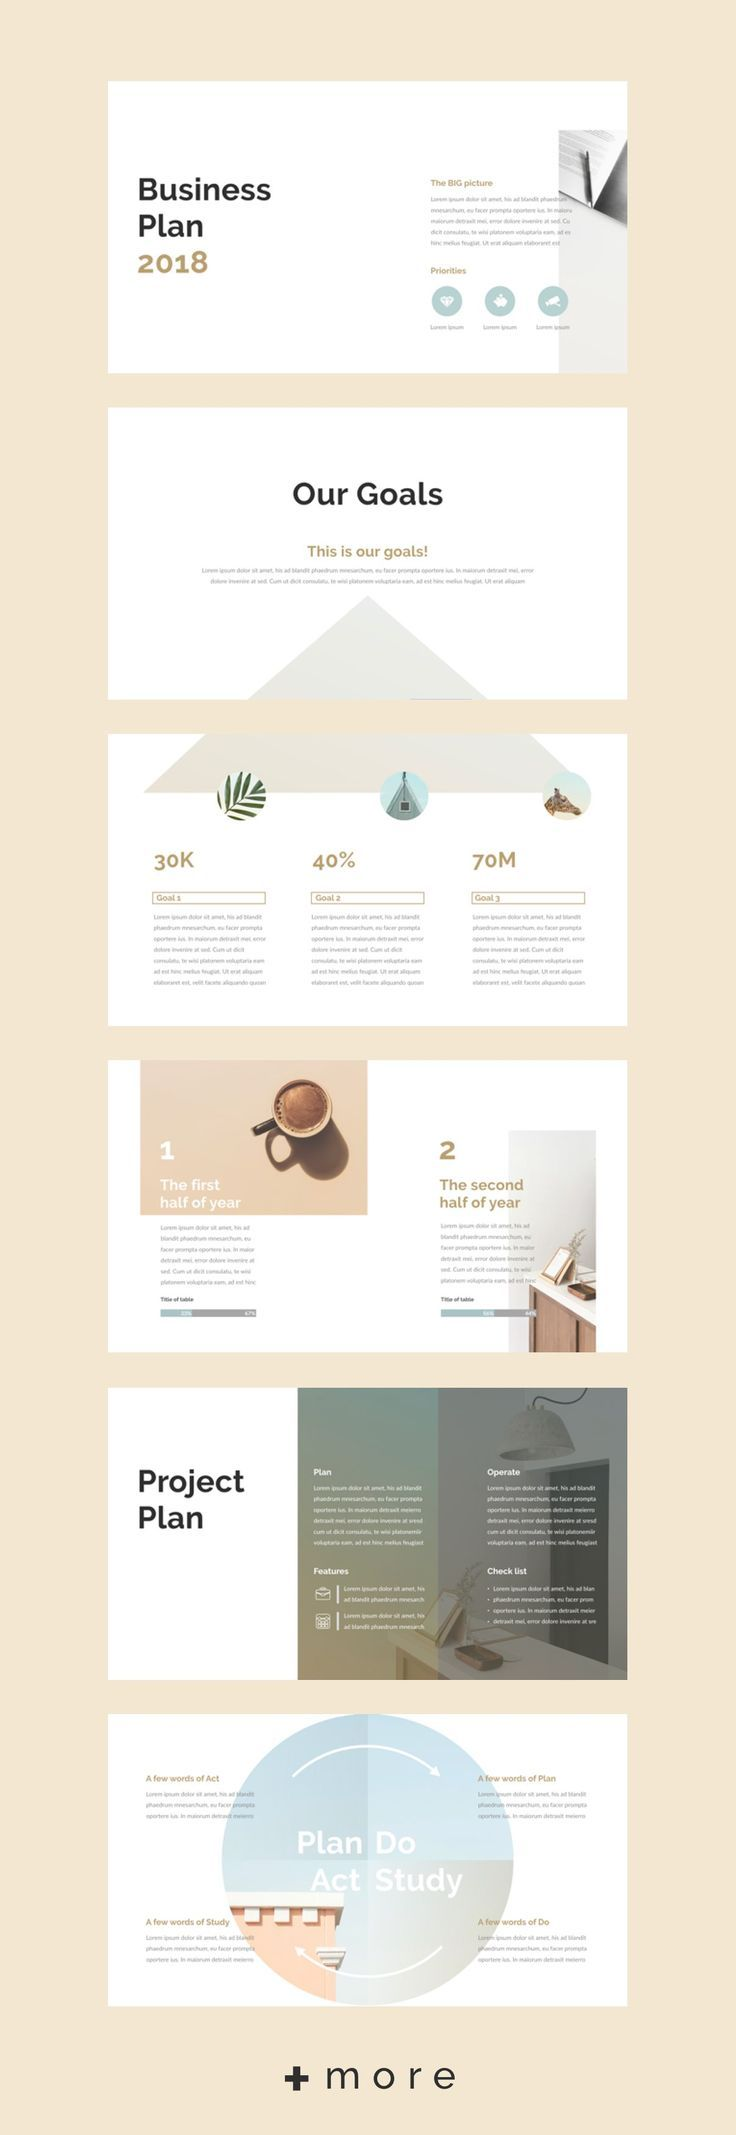 Best Simple Business Plan Template Ideas On Pinterest Simple - Business plan design template